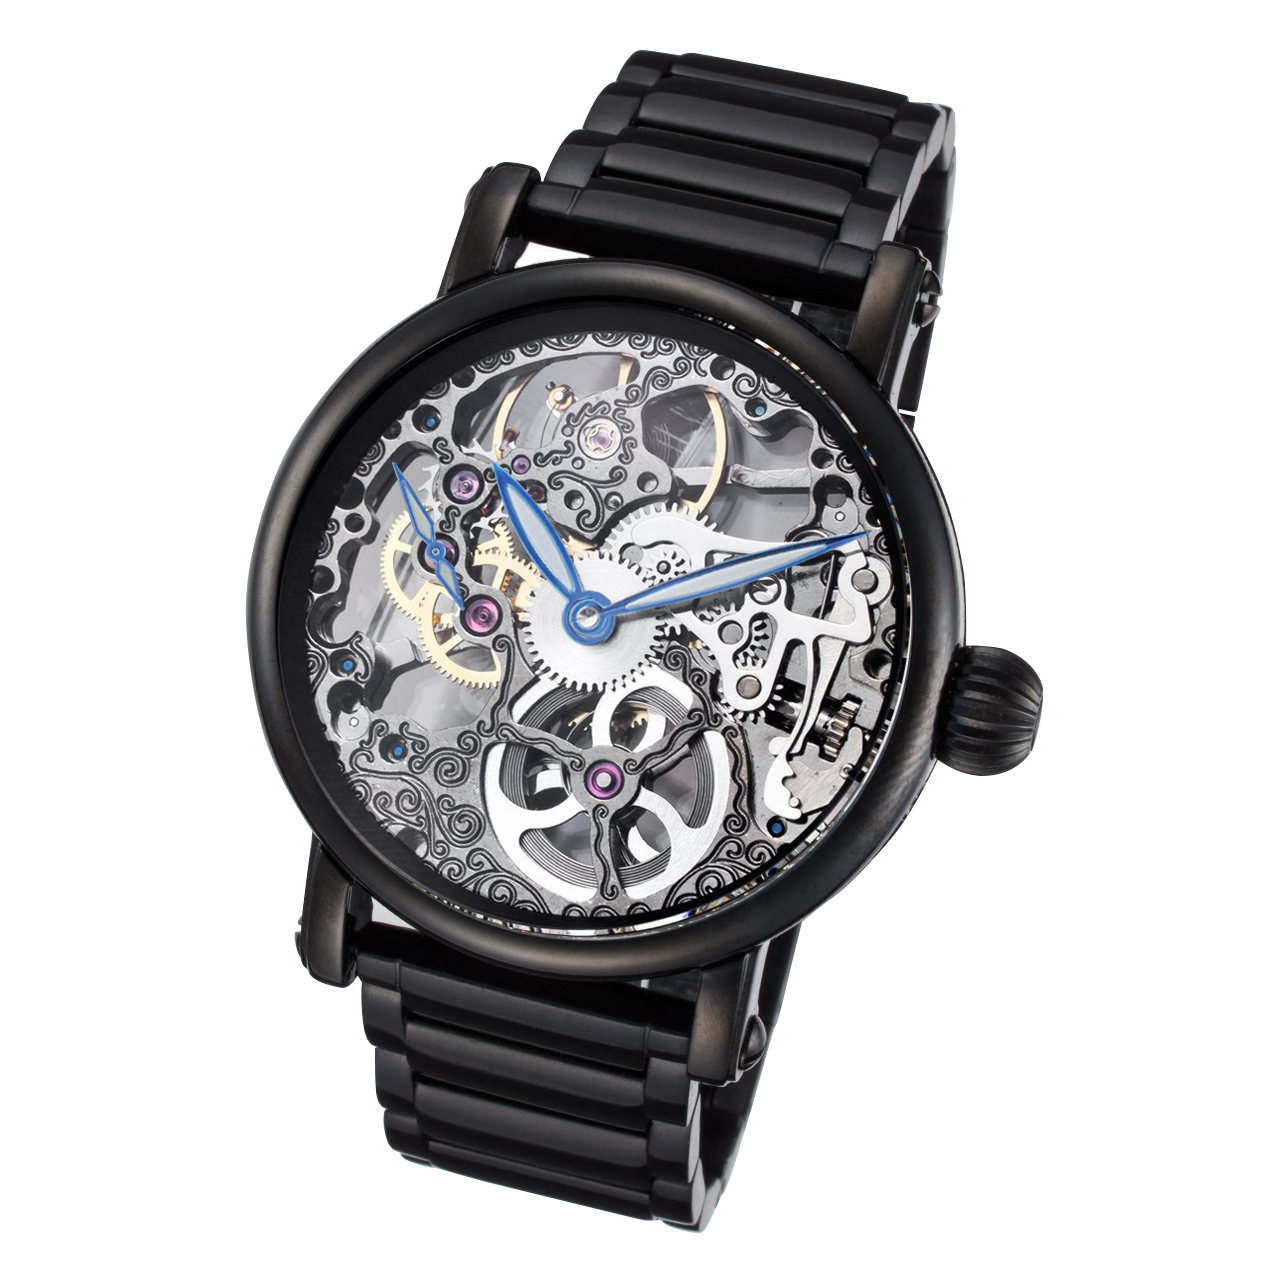 Black Skeleton Watch with Black Stainless Steel Band